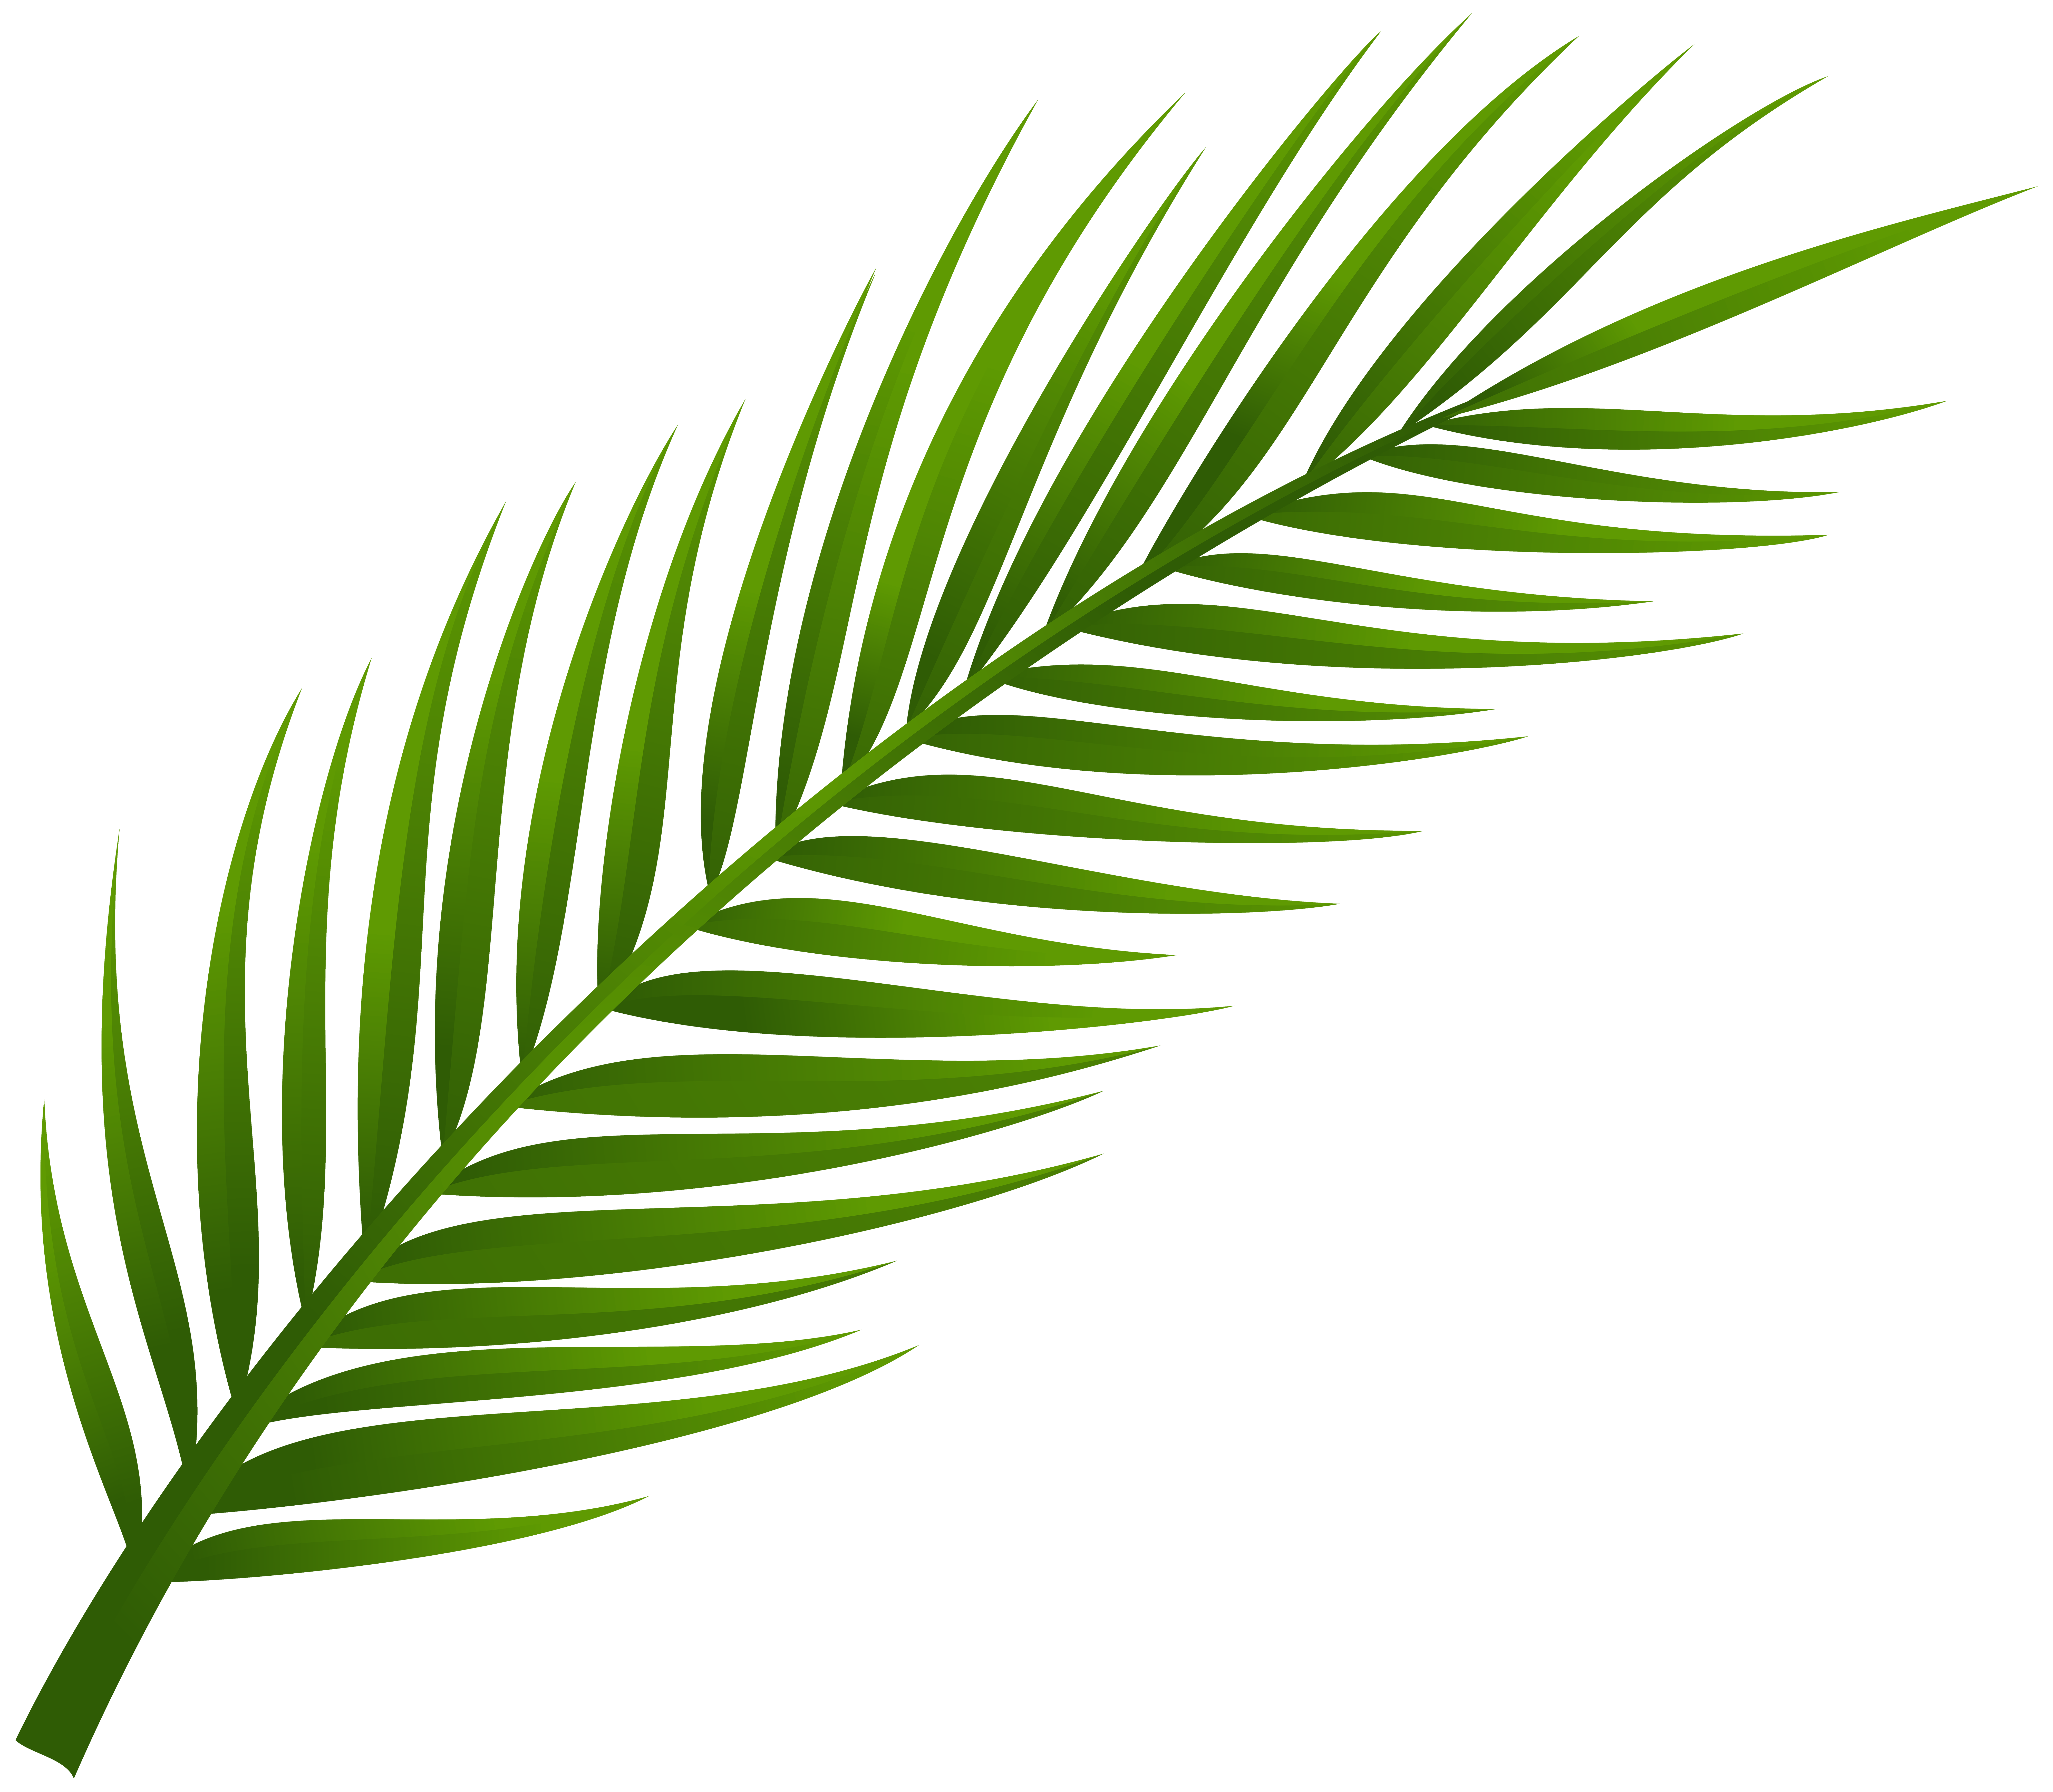 palm tree clipart free free download best palm tree clipart free